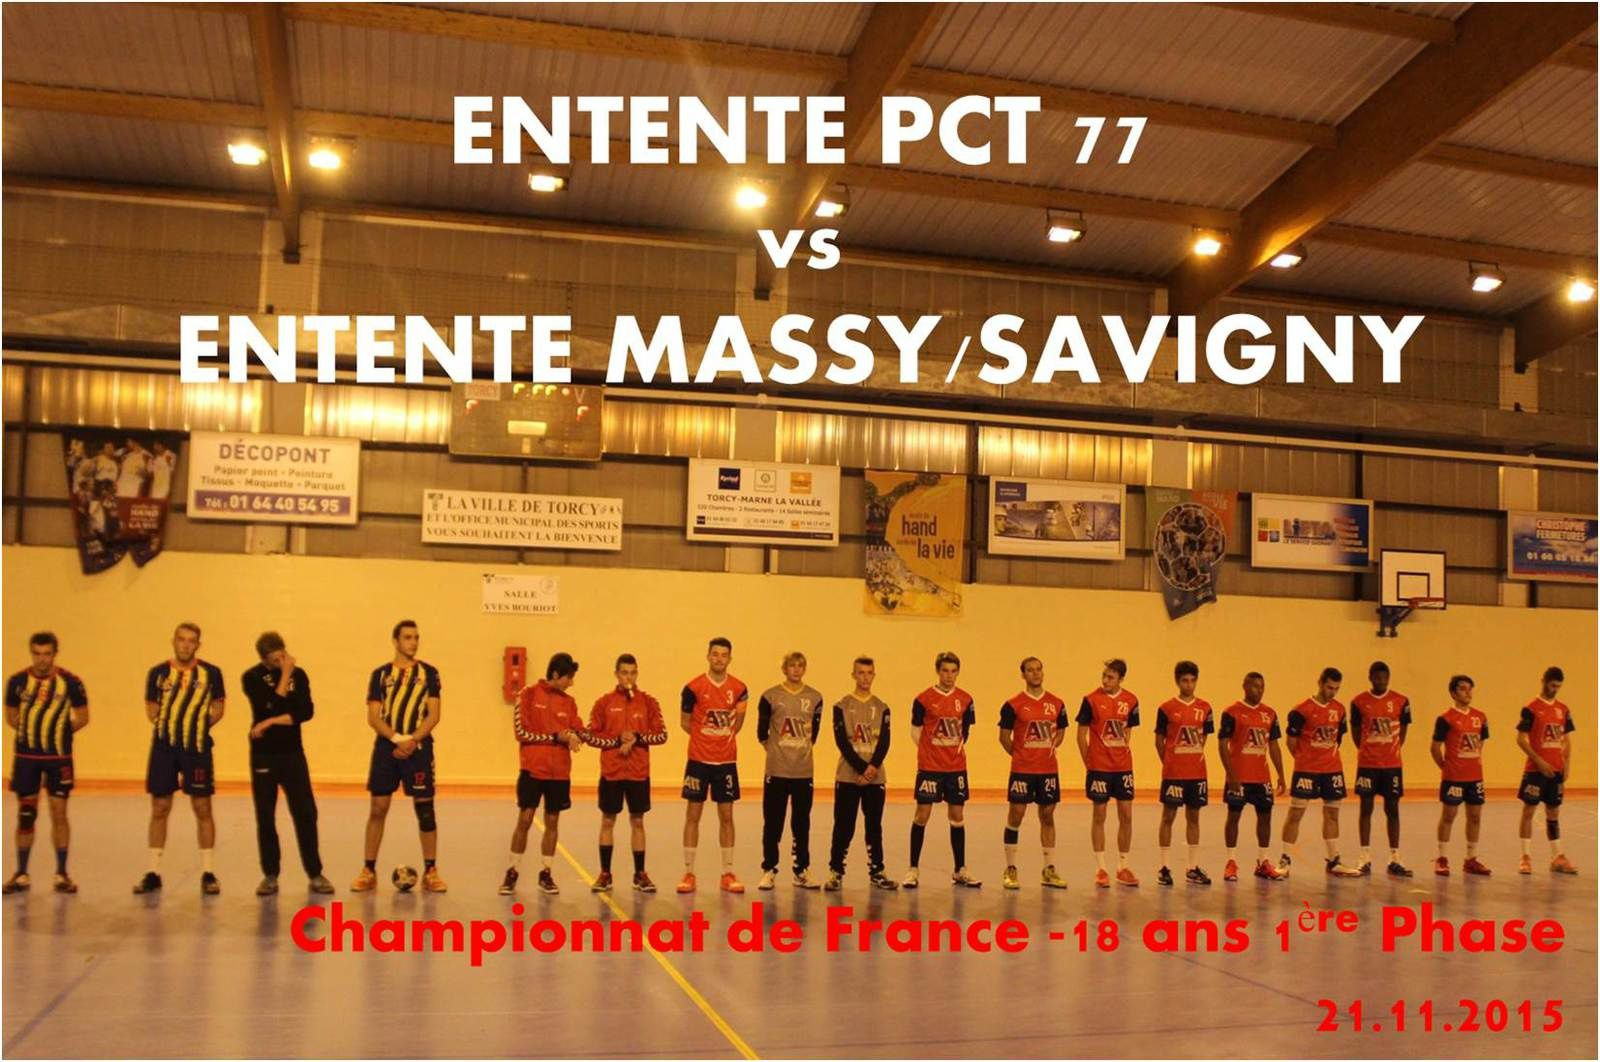 ENTENTE PCT 77 vs MASSY/SAVIGNY (CdF -18M) 21.11.2015